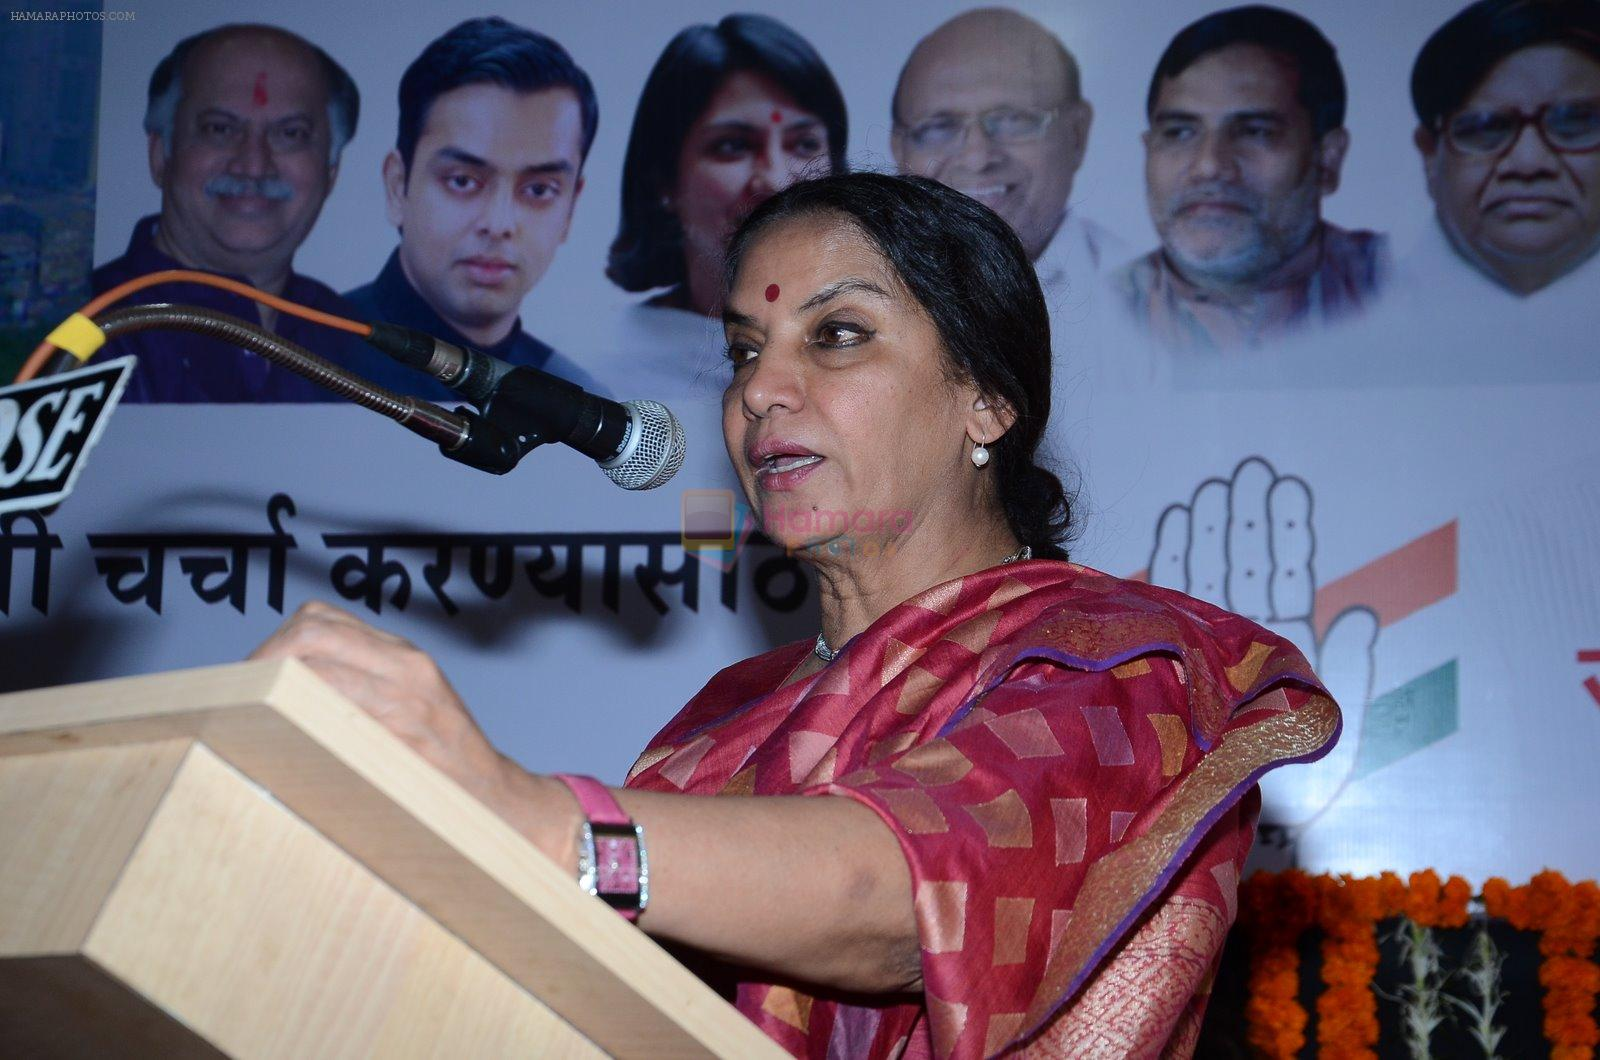 Shabana Azmi at political event in Mumbai on 24th March 2015